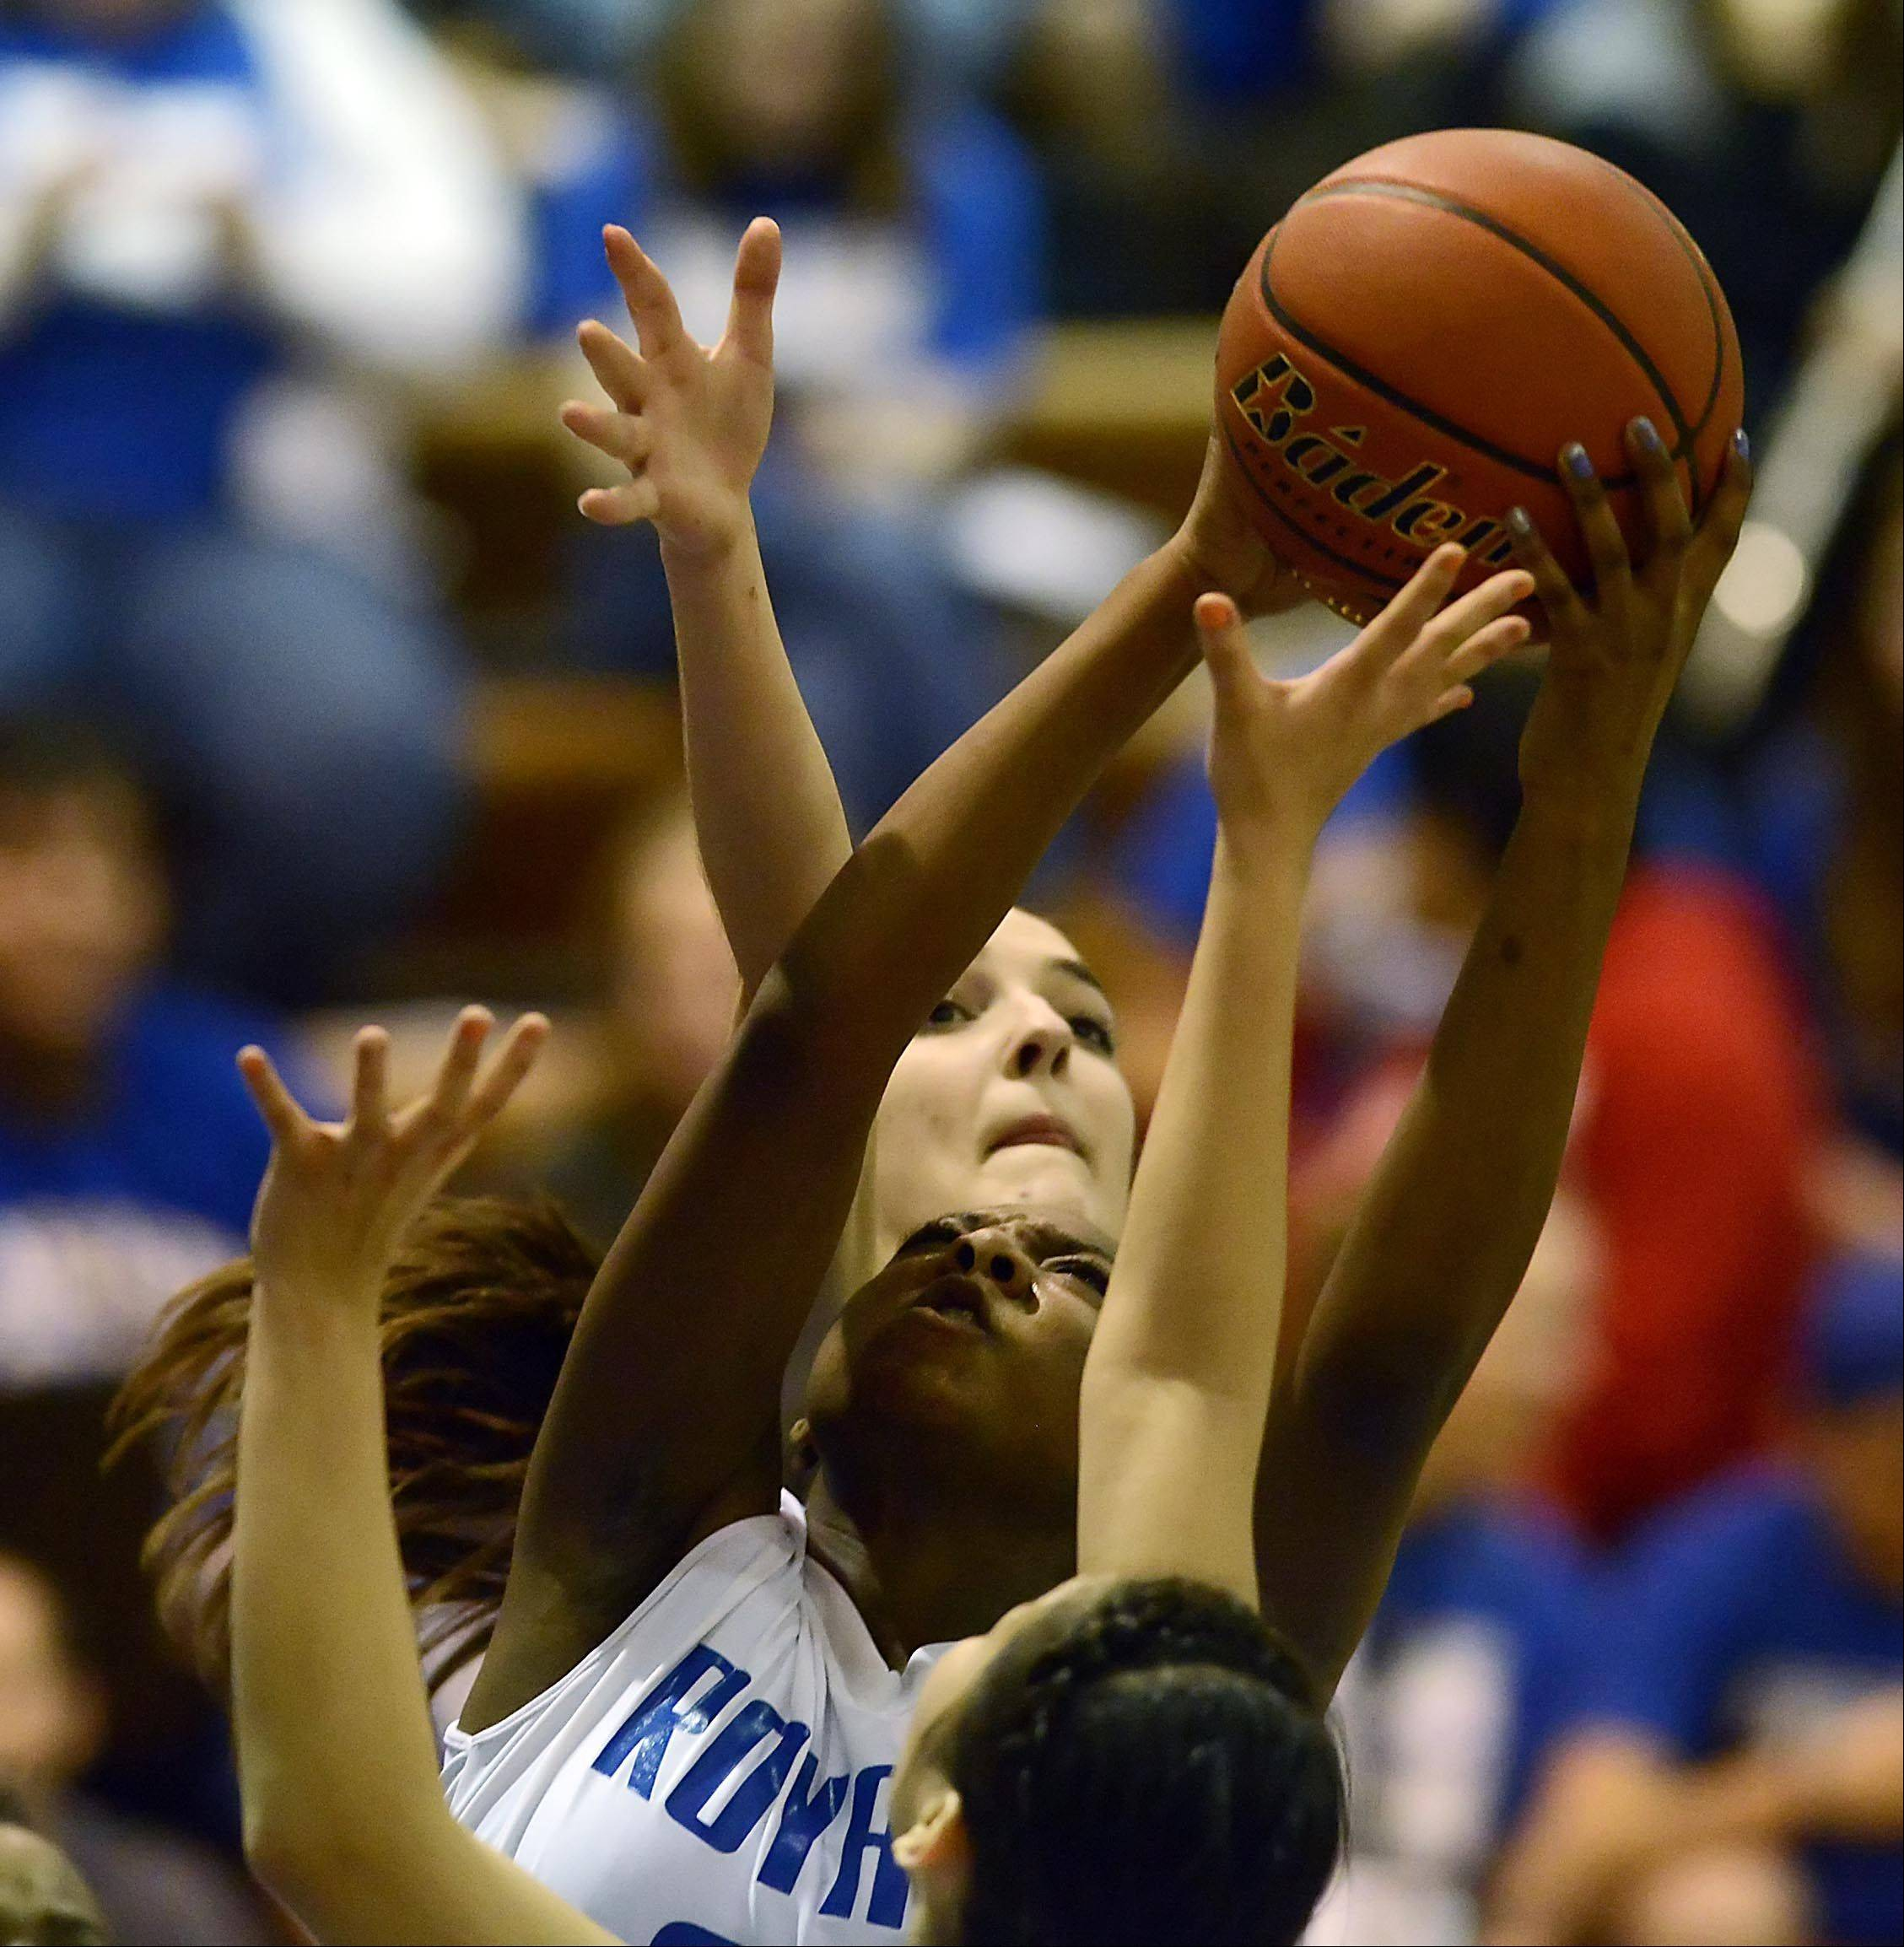 Larkin's Shawndrea Hill snags a rebound against Elgin's Tamara Milosevic.